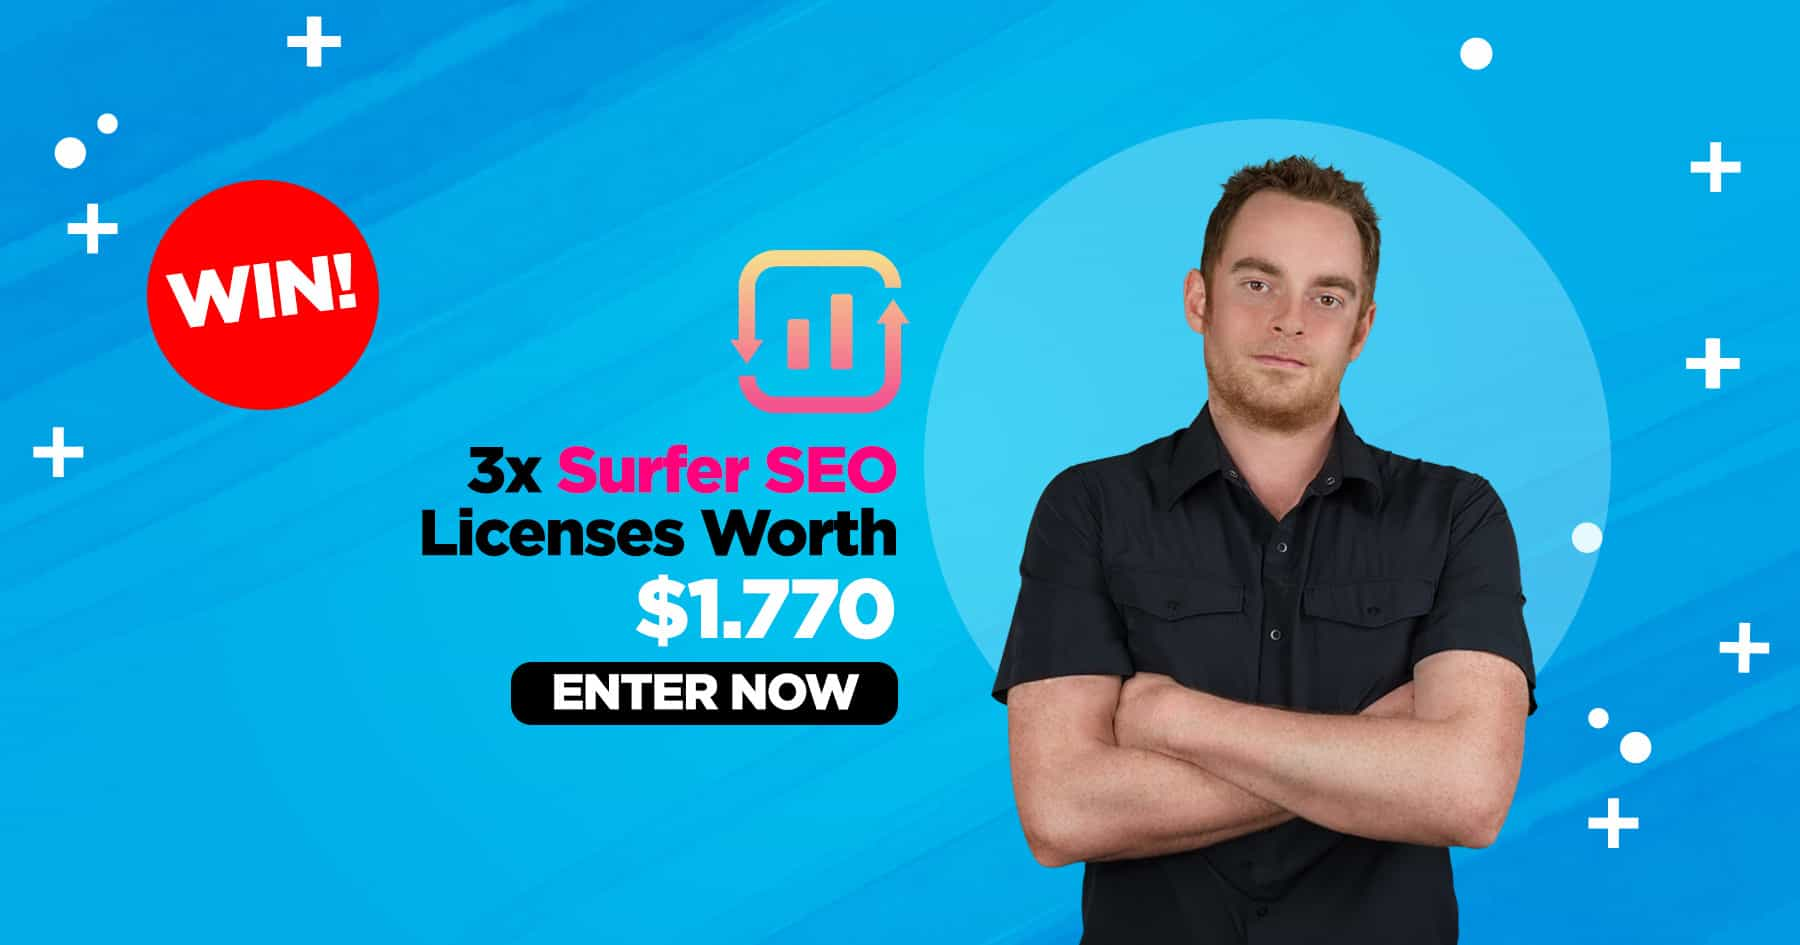 Win 3x Surfer SEO Annual Accounts Worth $1,770 Now!